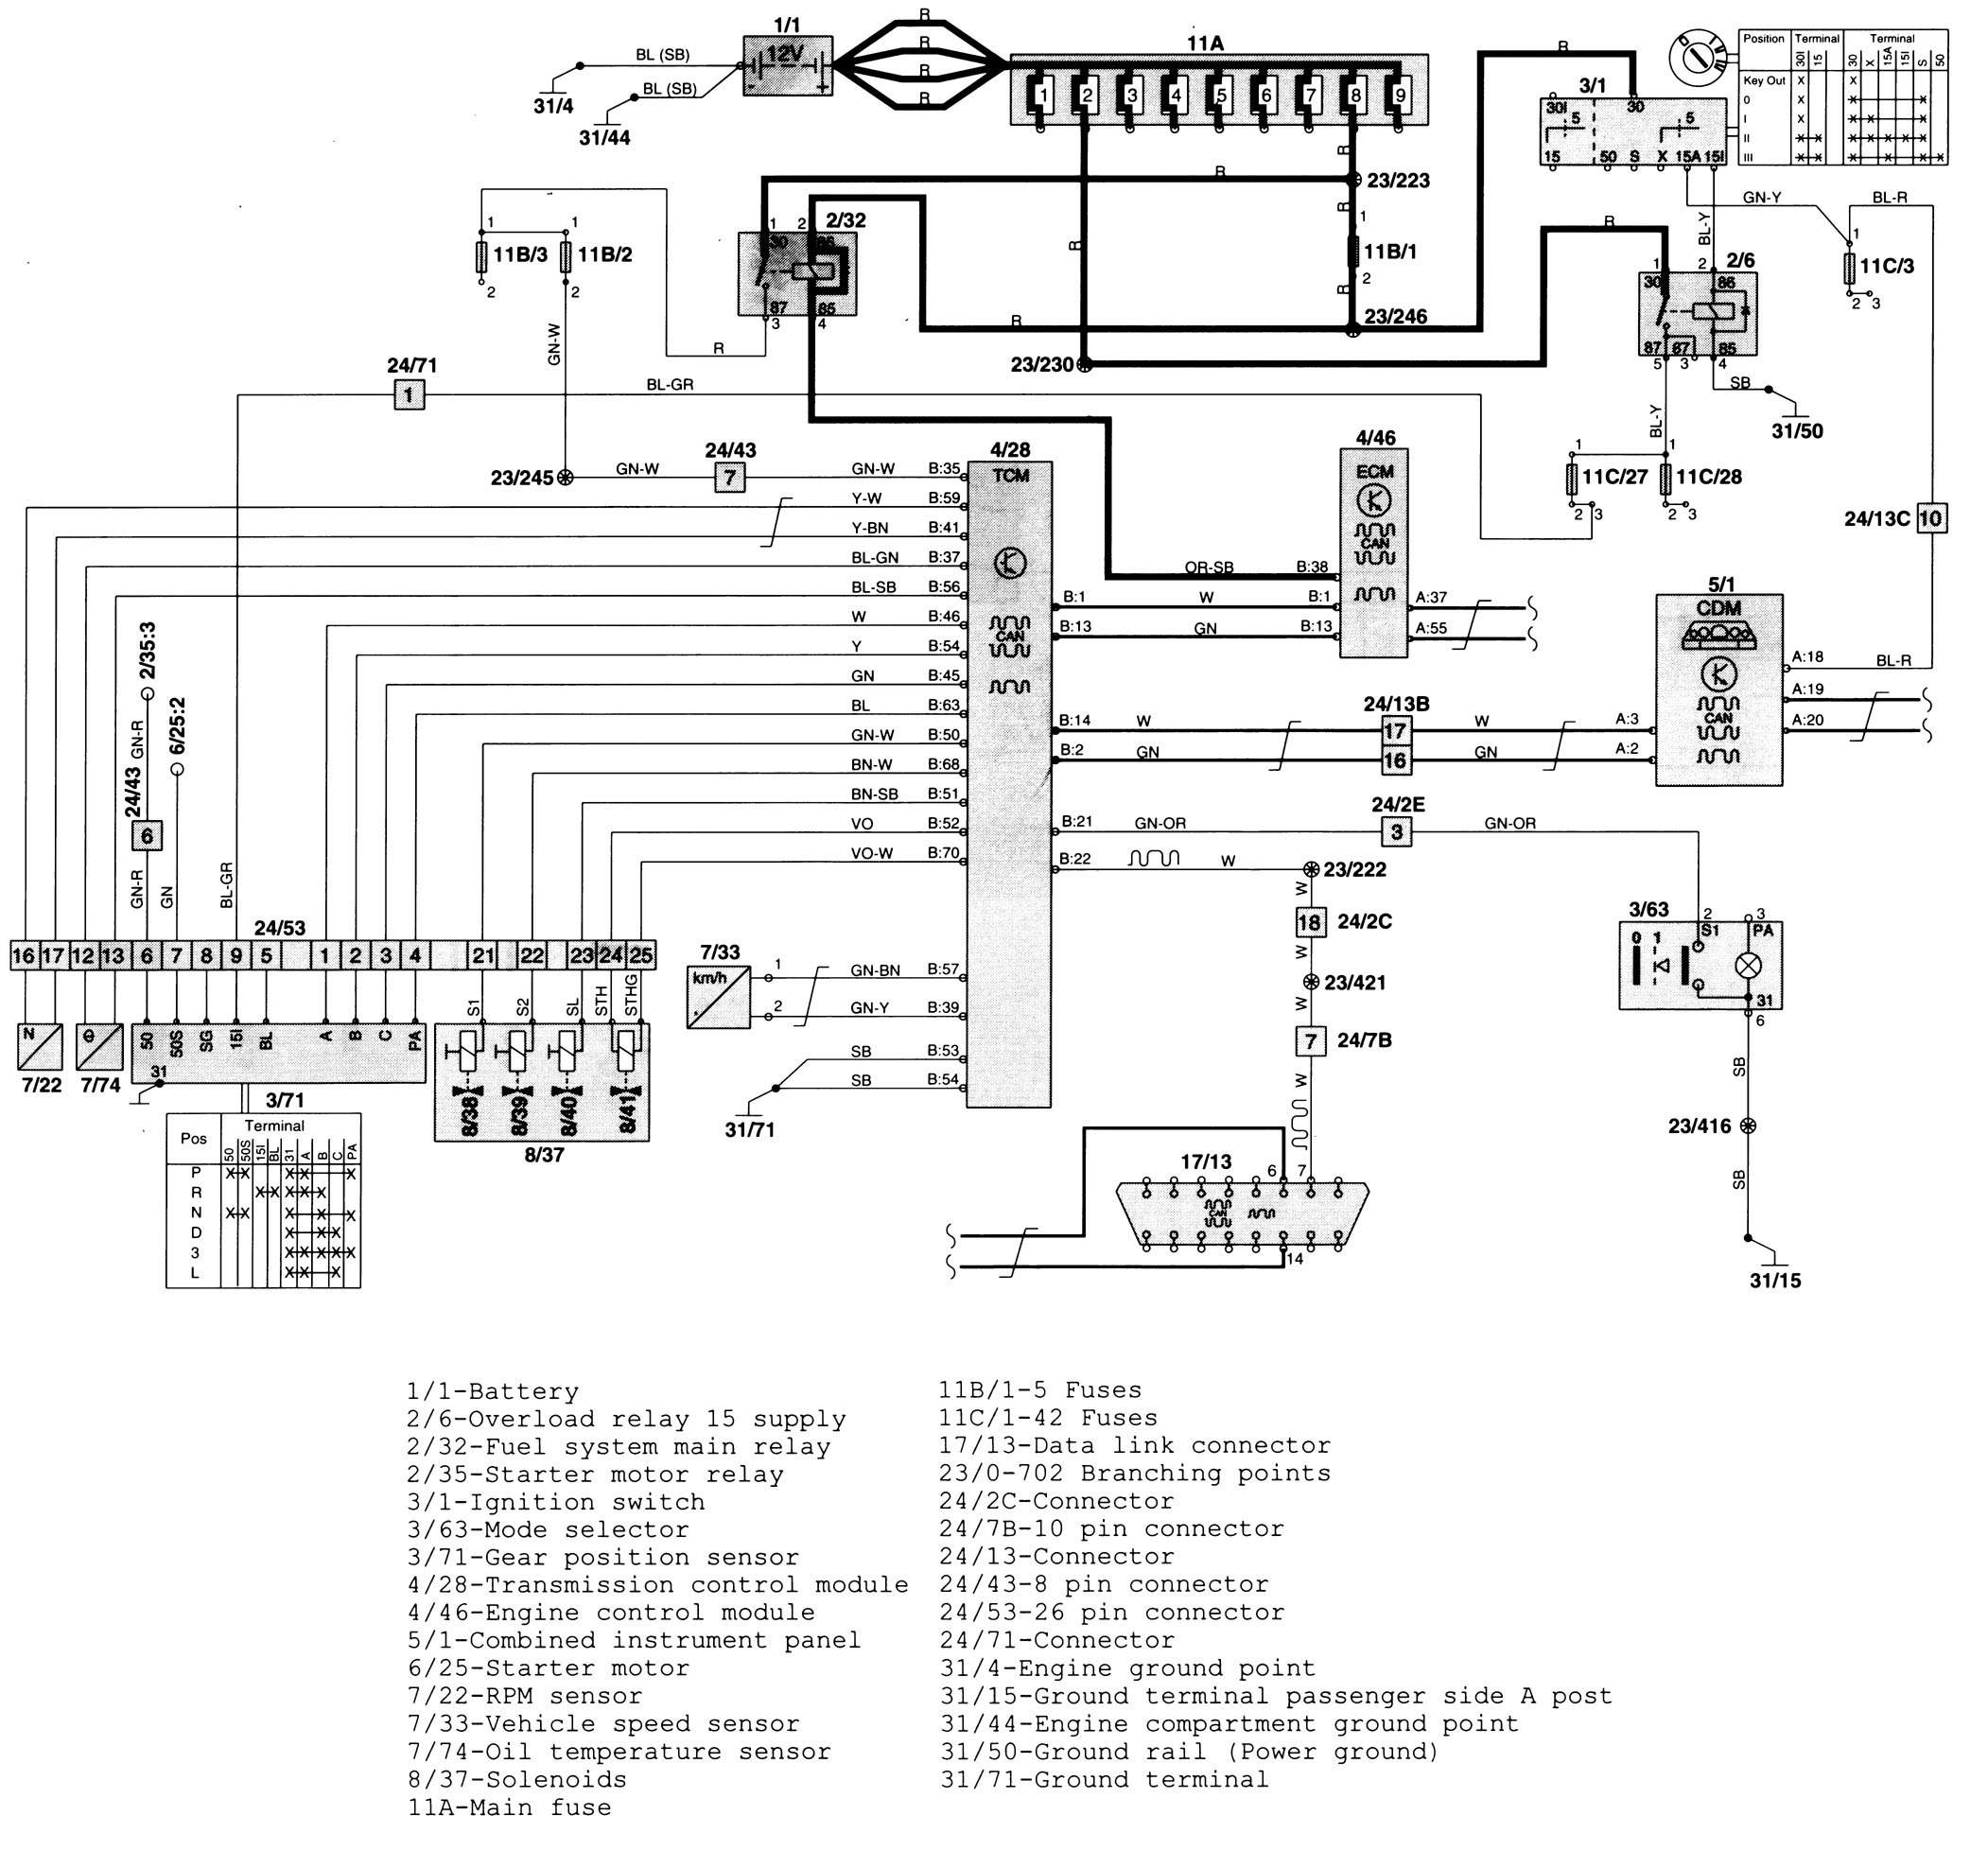 volvo s70 wiring diagram transmission controls 1999 volvo s70 (1999 2000) wiring diagrams transmission controls 99 Volvo S70 Engine at mifinder.co